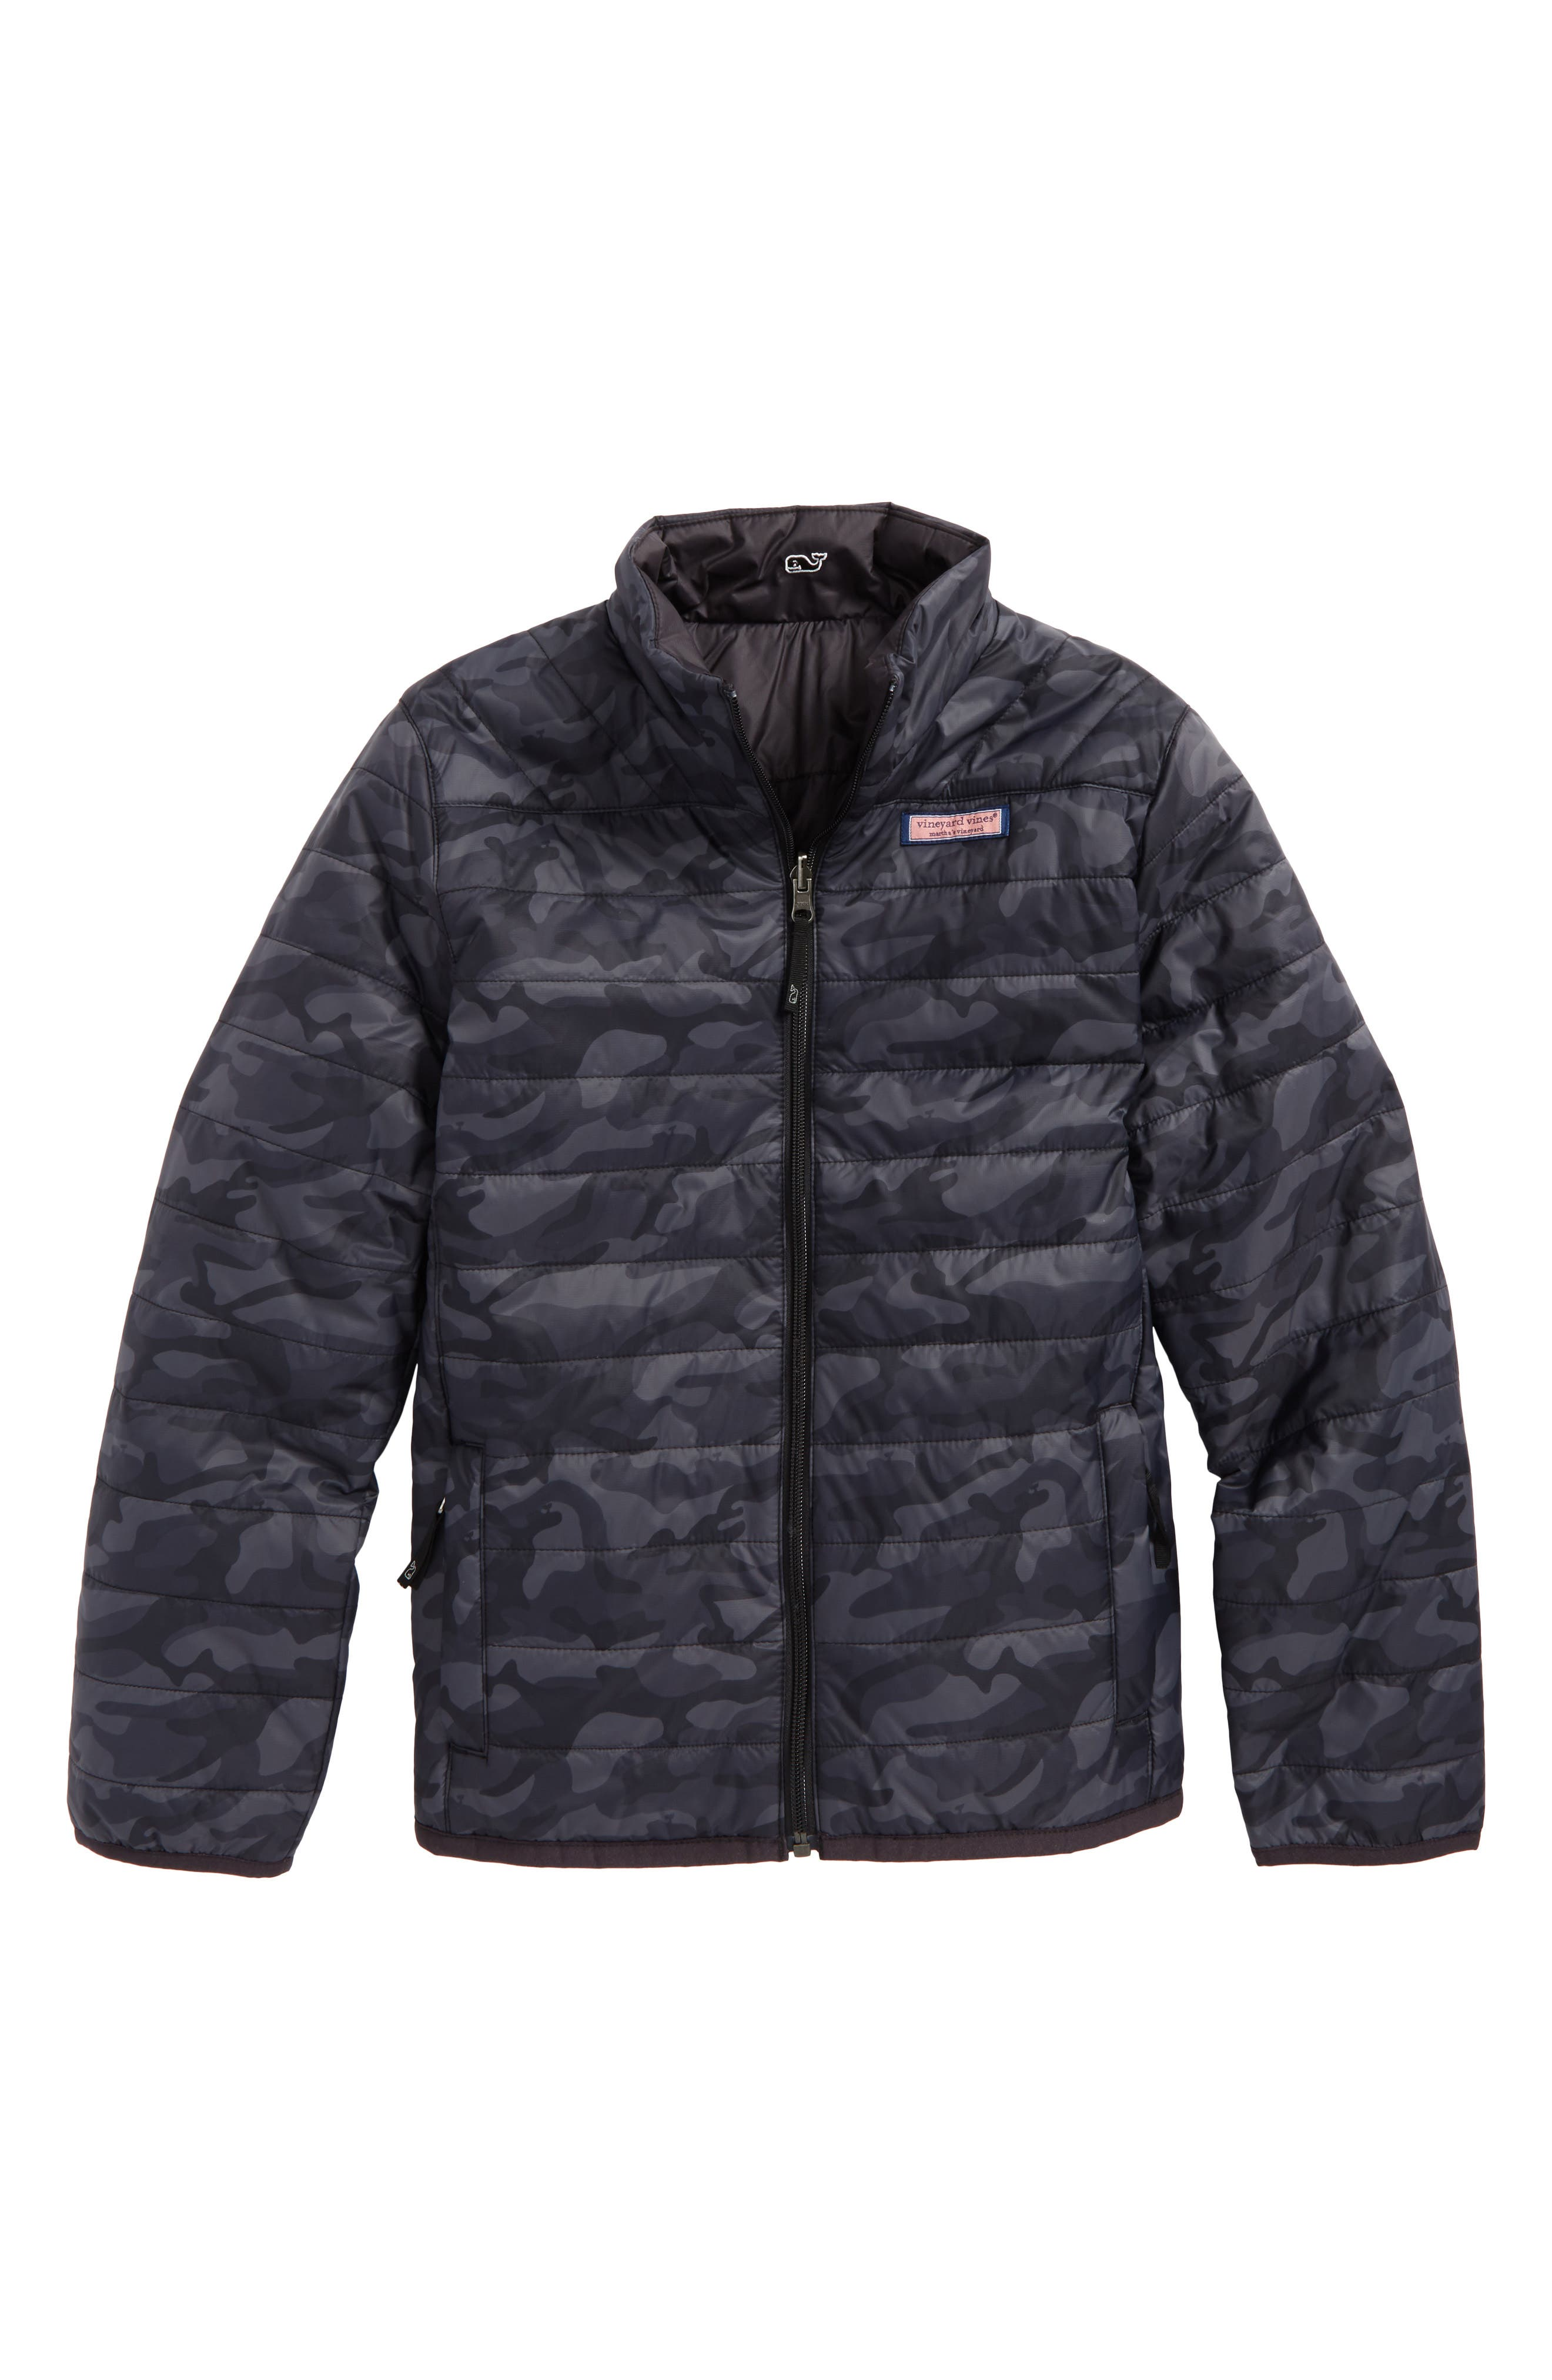 Reversible Mountain Weekend Jacket,                         Main,                         color, 002